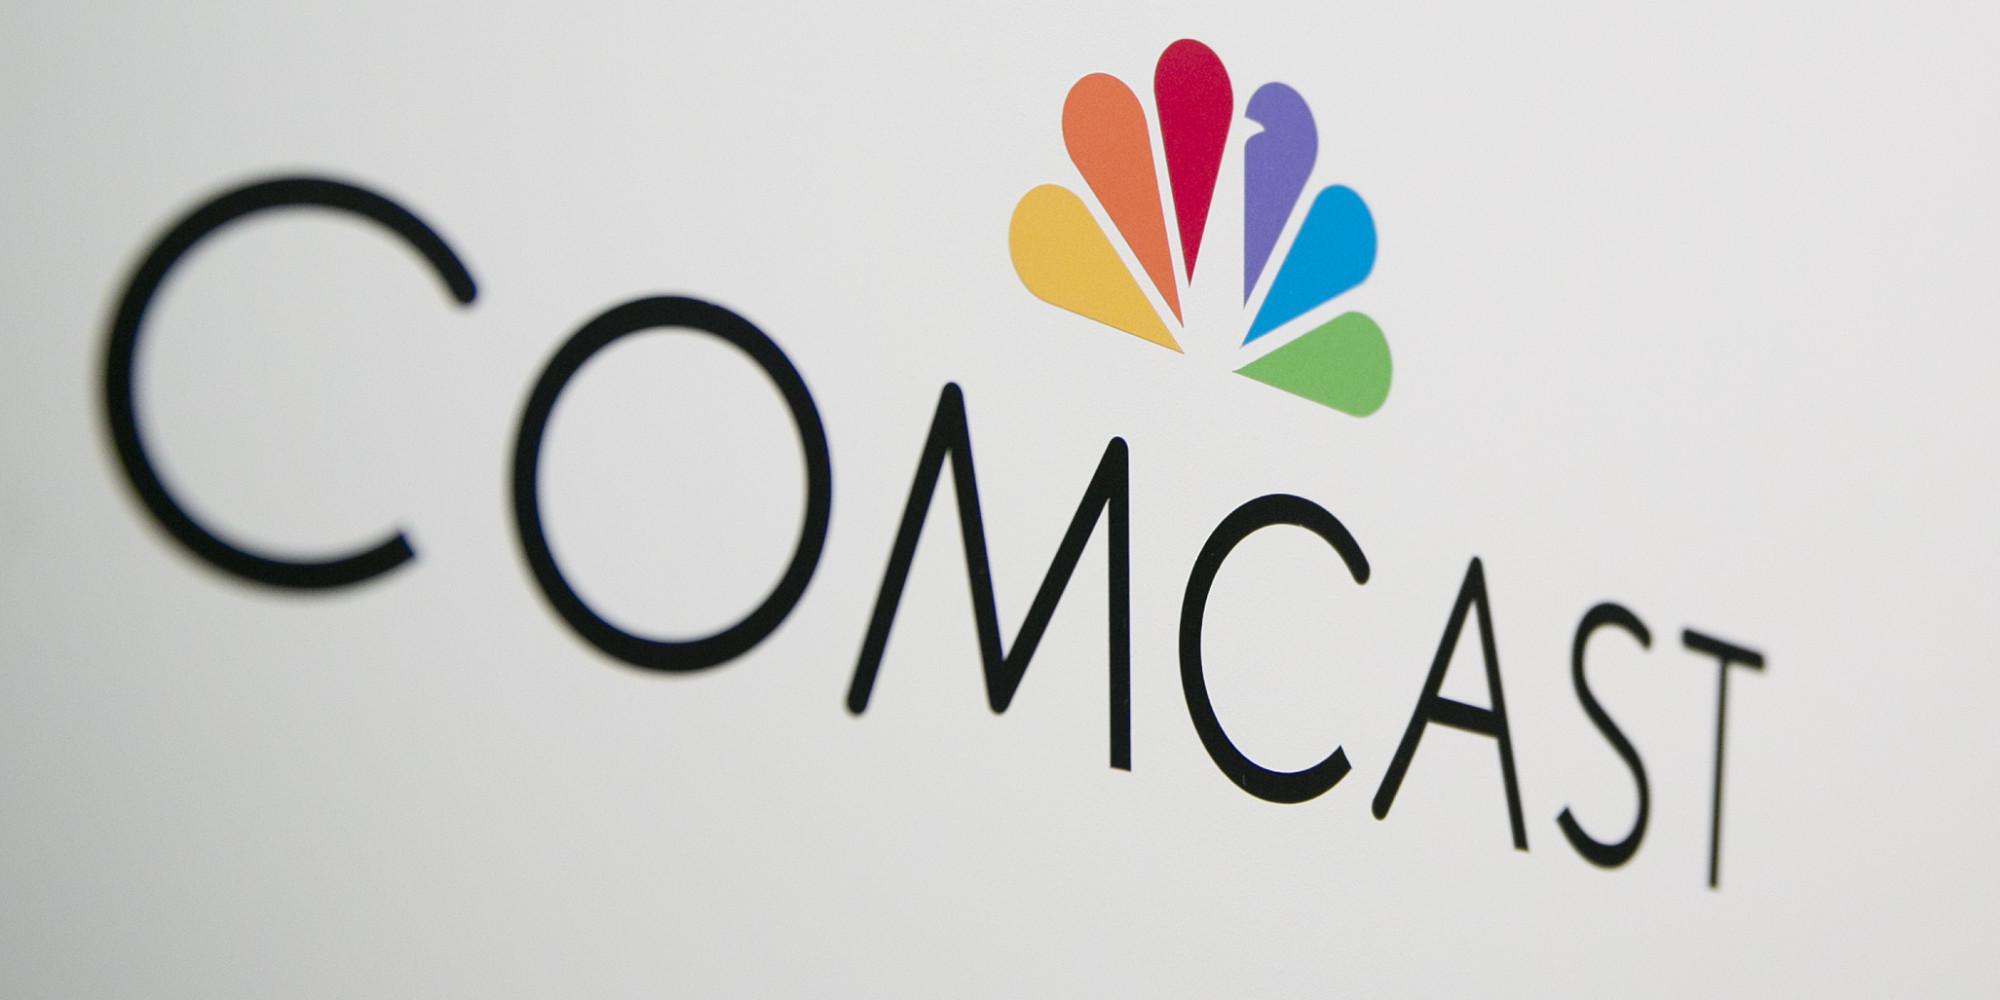 most americans think comcast time warner cable merger is bad news  most americans think comcasttime warner cable merger is bad news huffington post